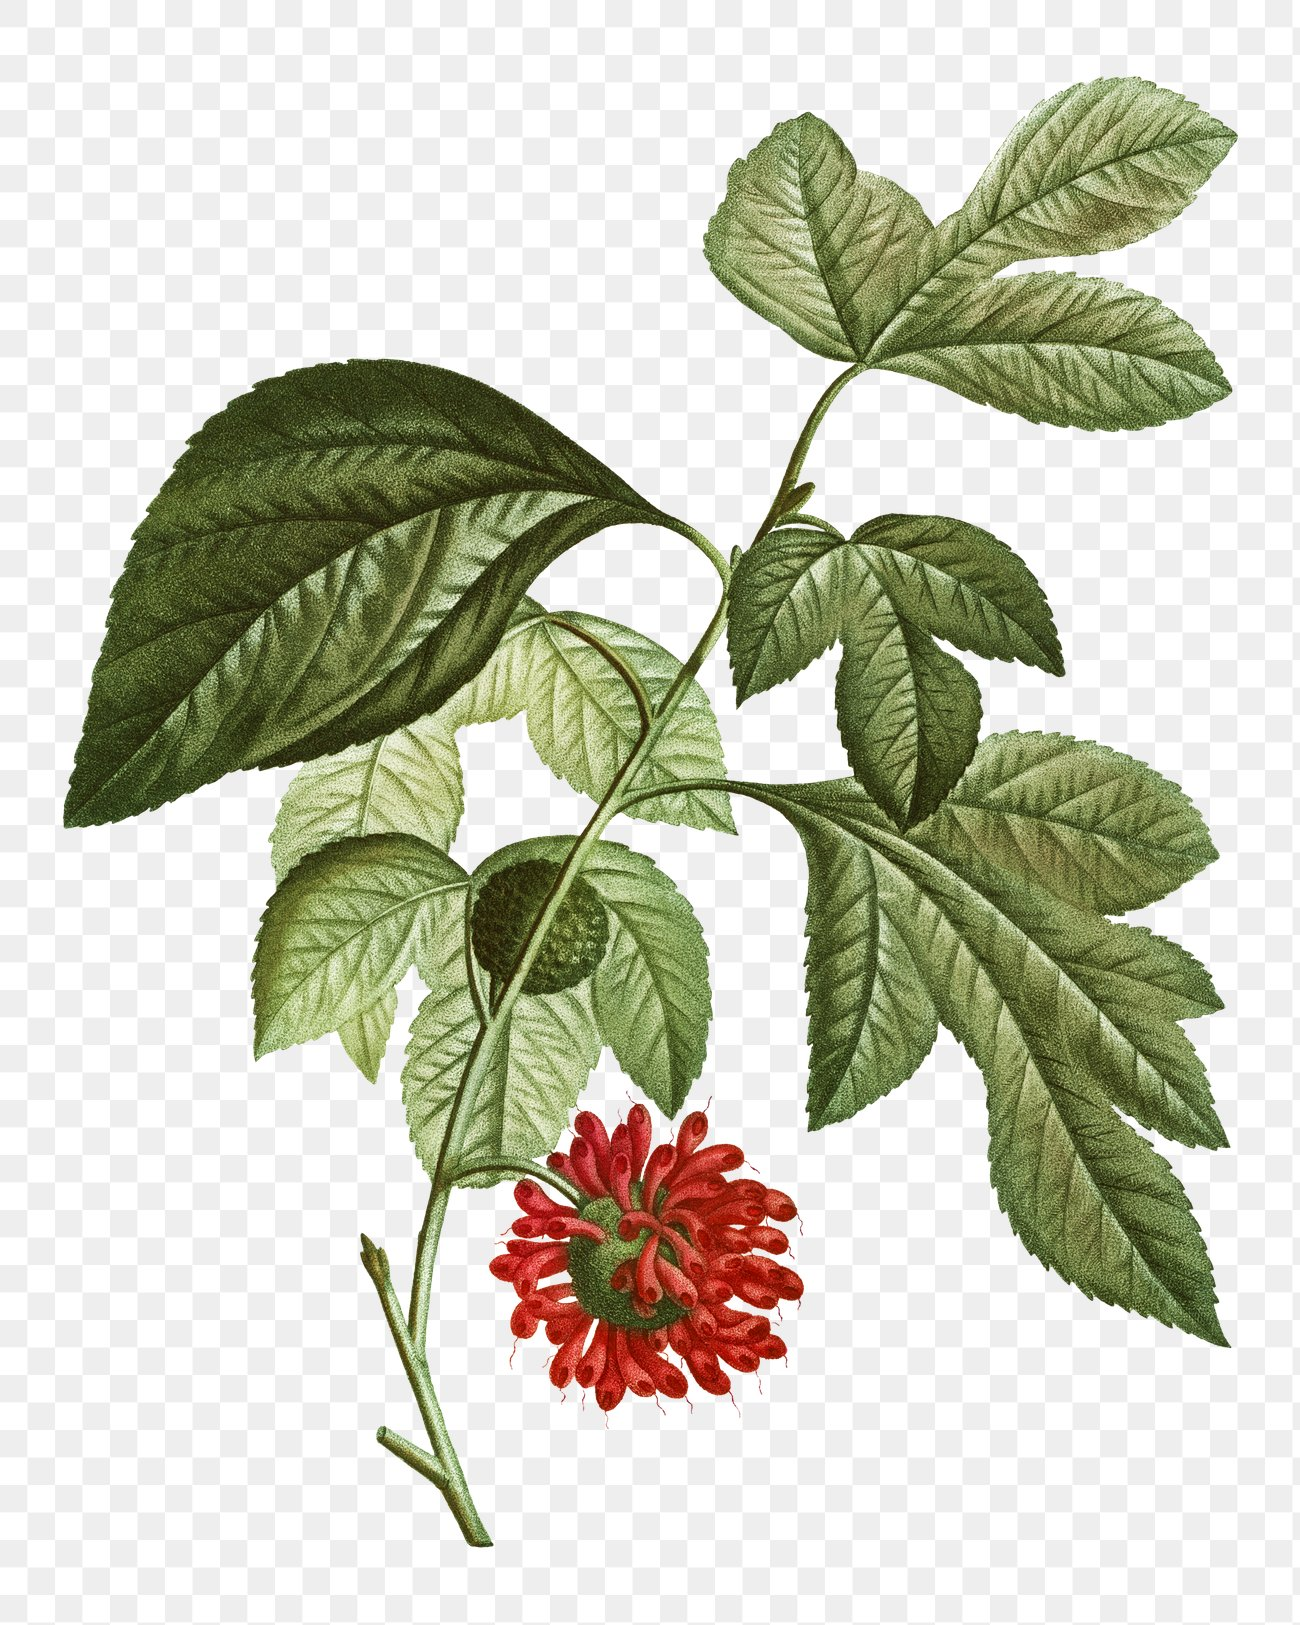 Paper Mulberry Png - Red Paper Mullberry flower | Free transparent png - 568058